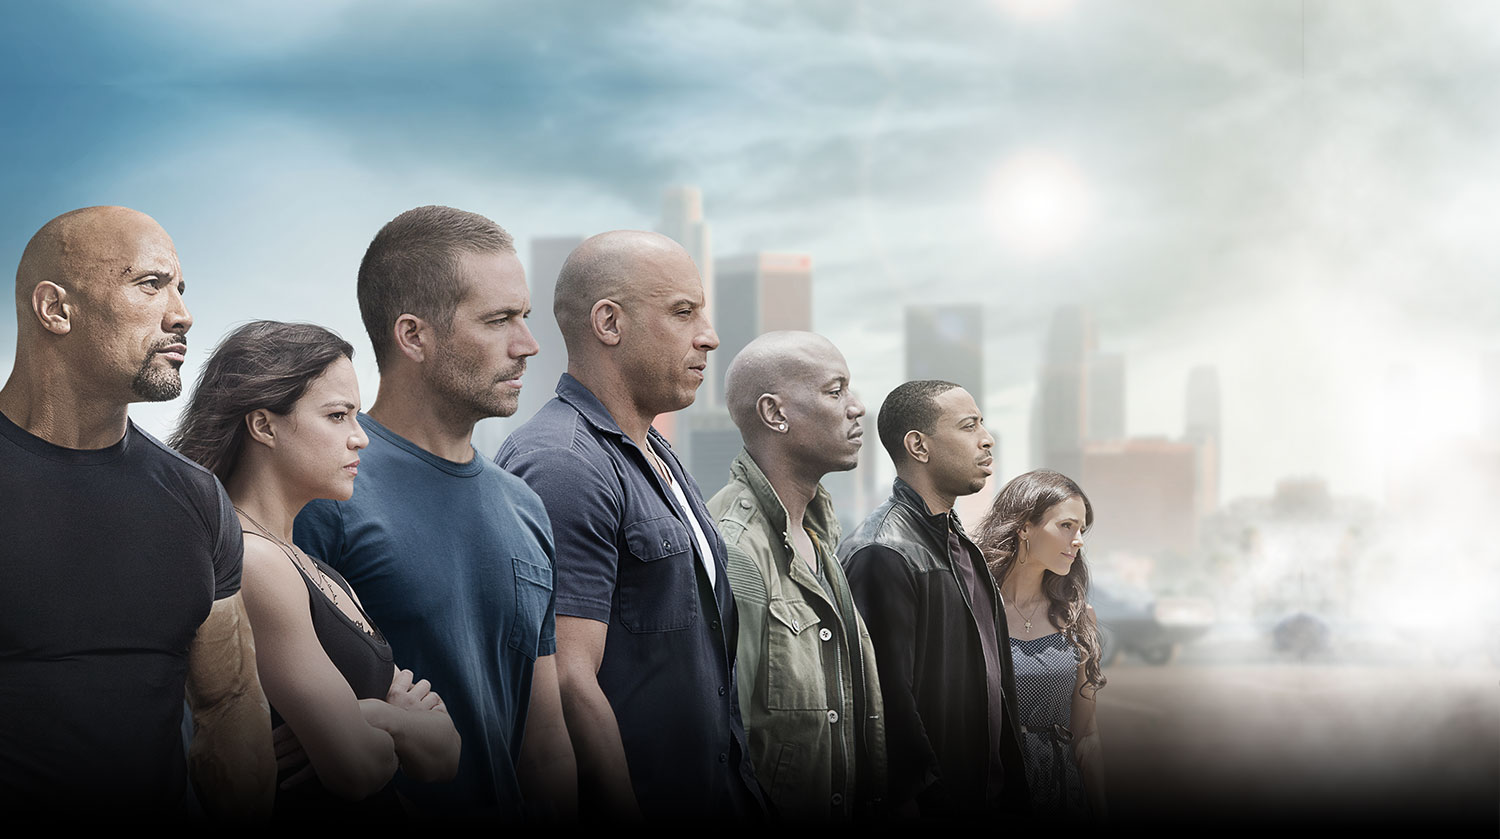 Furious 7: Goodby Paul